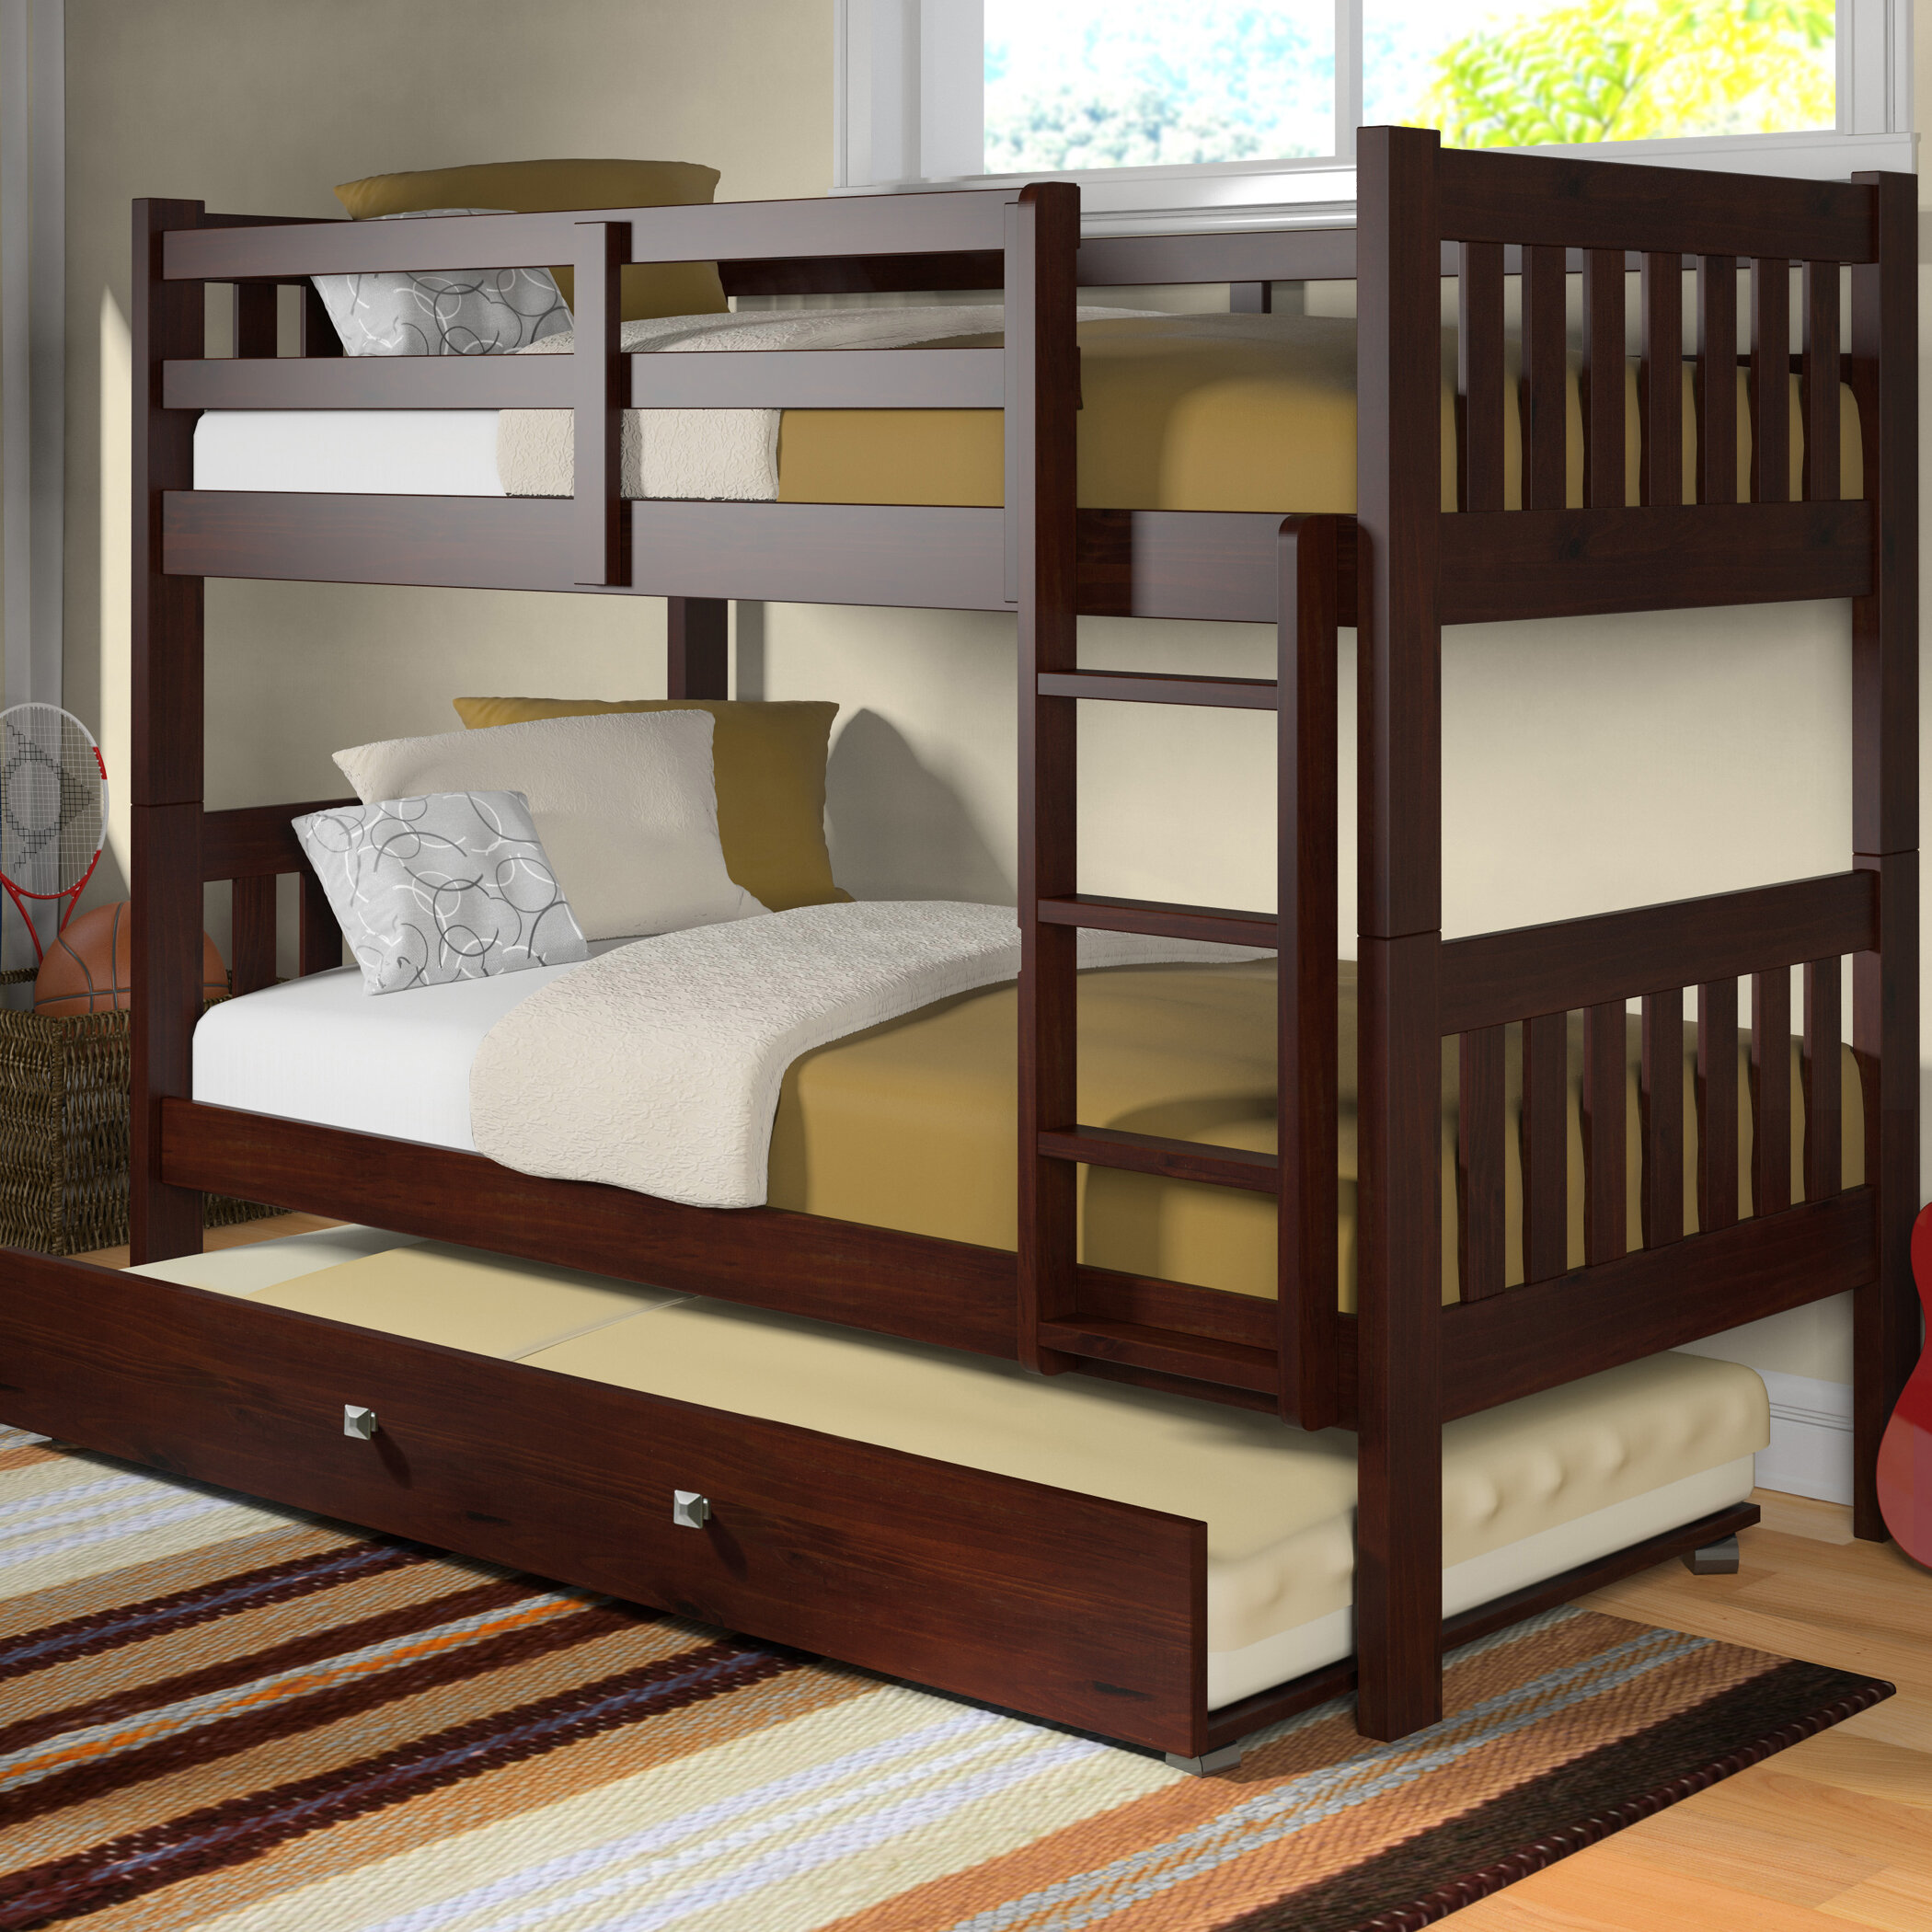 f l modern ladder twin beds bunk steps bed t and with storage astonishing mattresses adult trundle furniture wooden decoration mattress m ideas drawers loft futon also